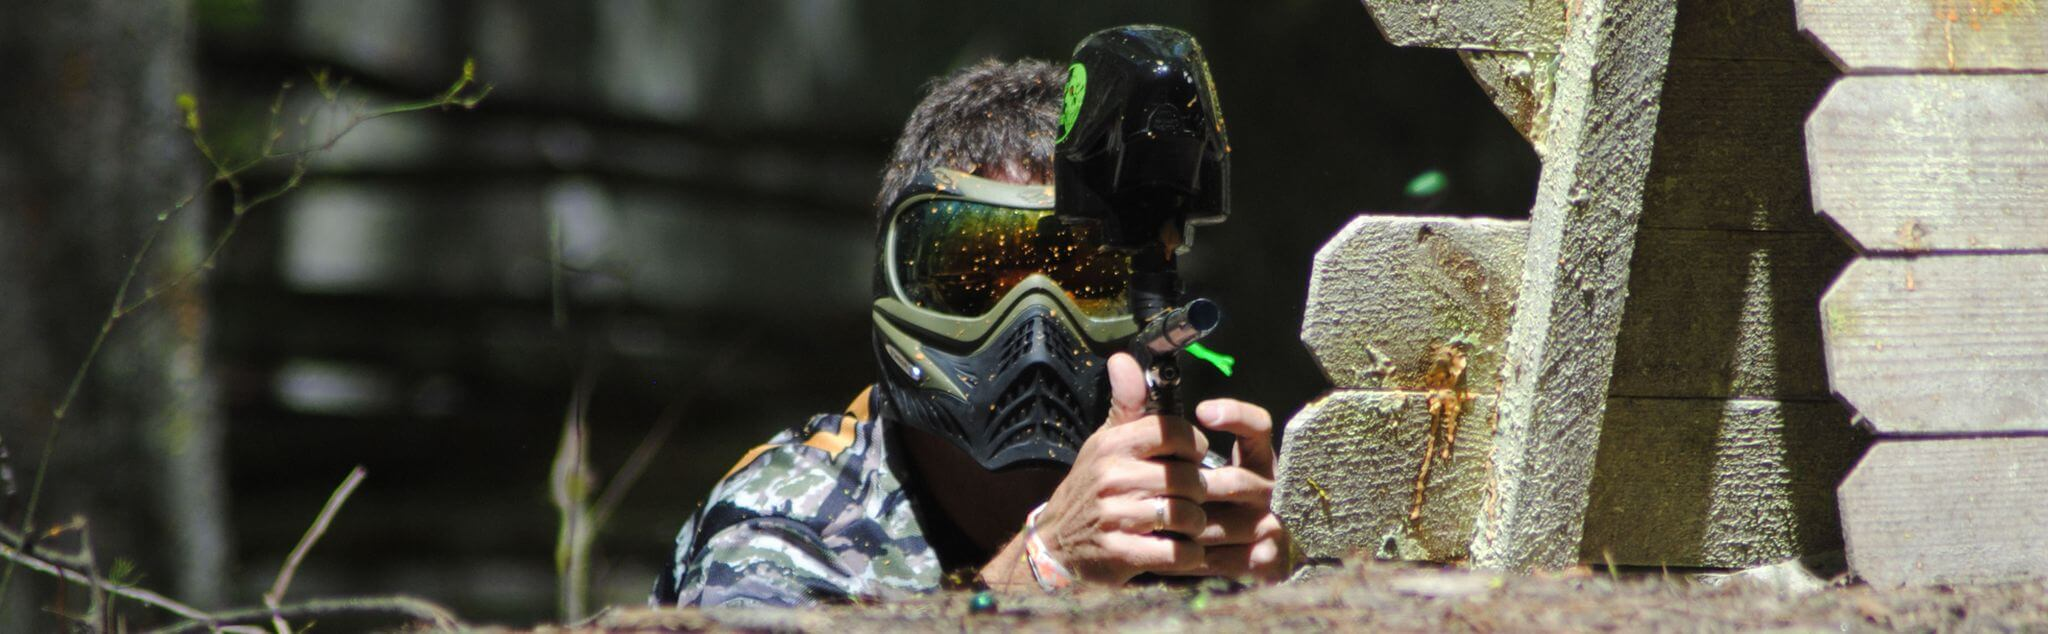 Paintball a Arcugnano